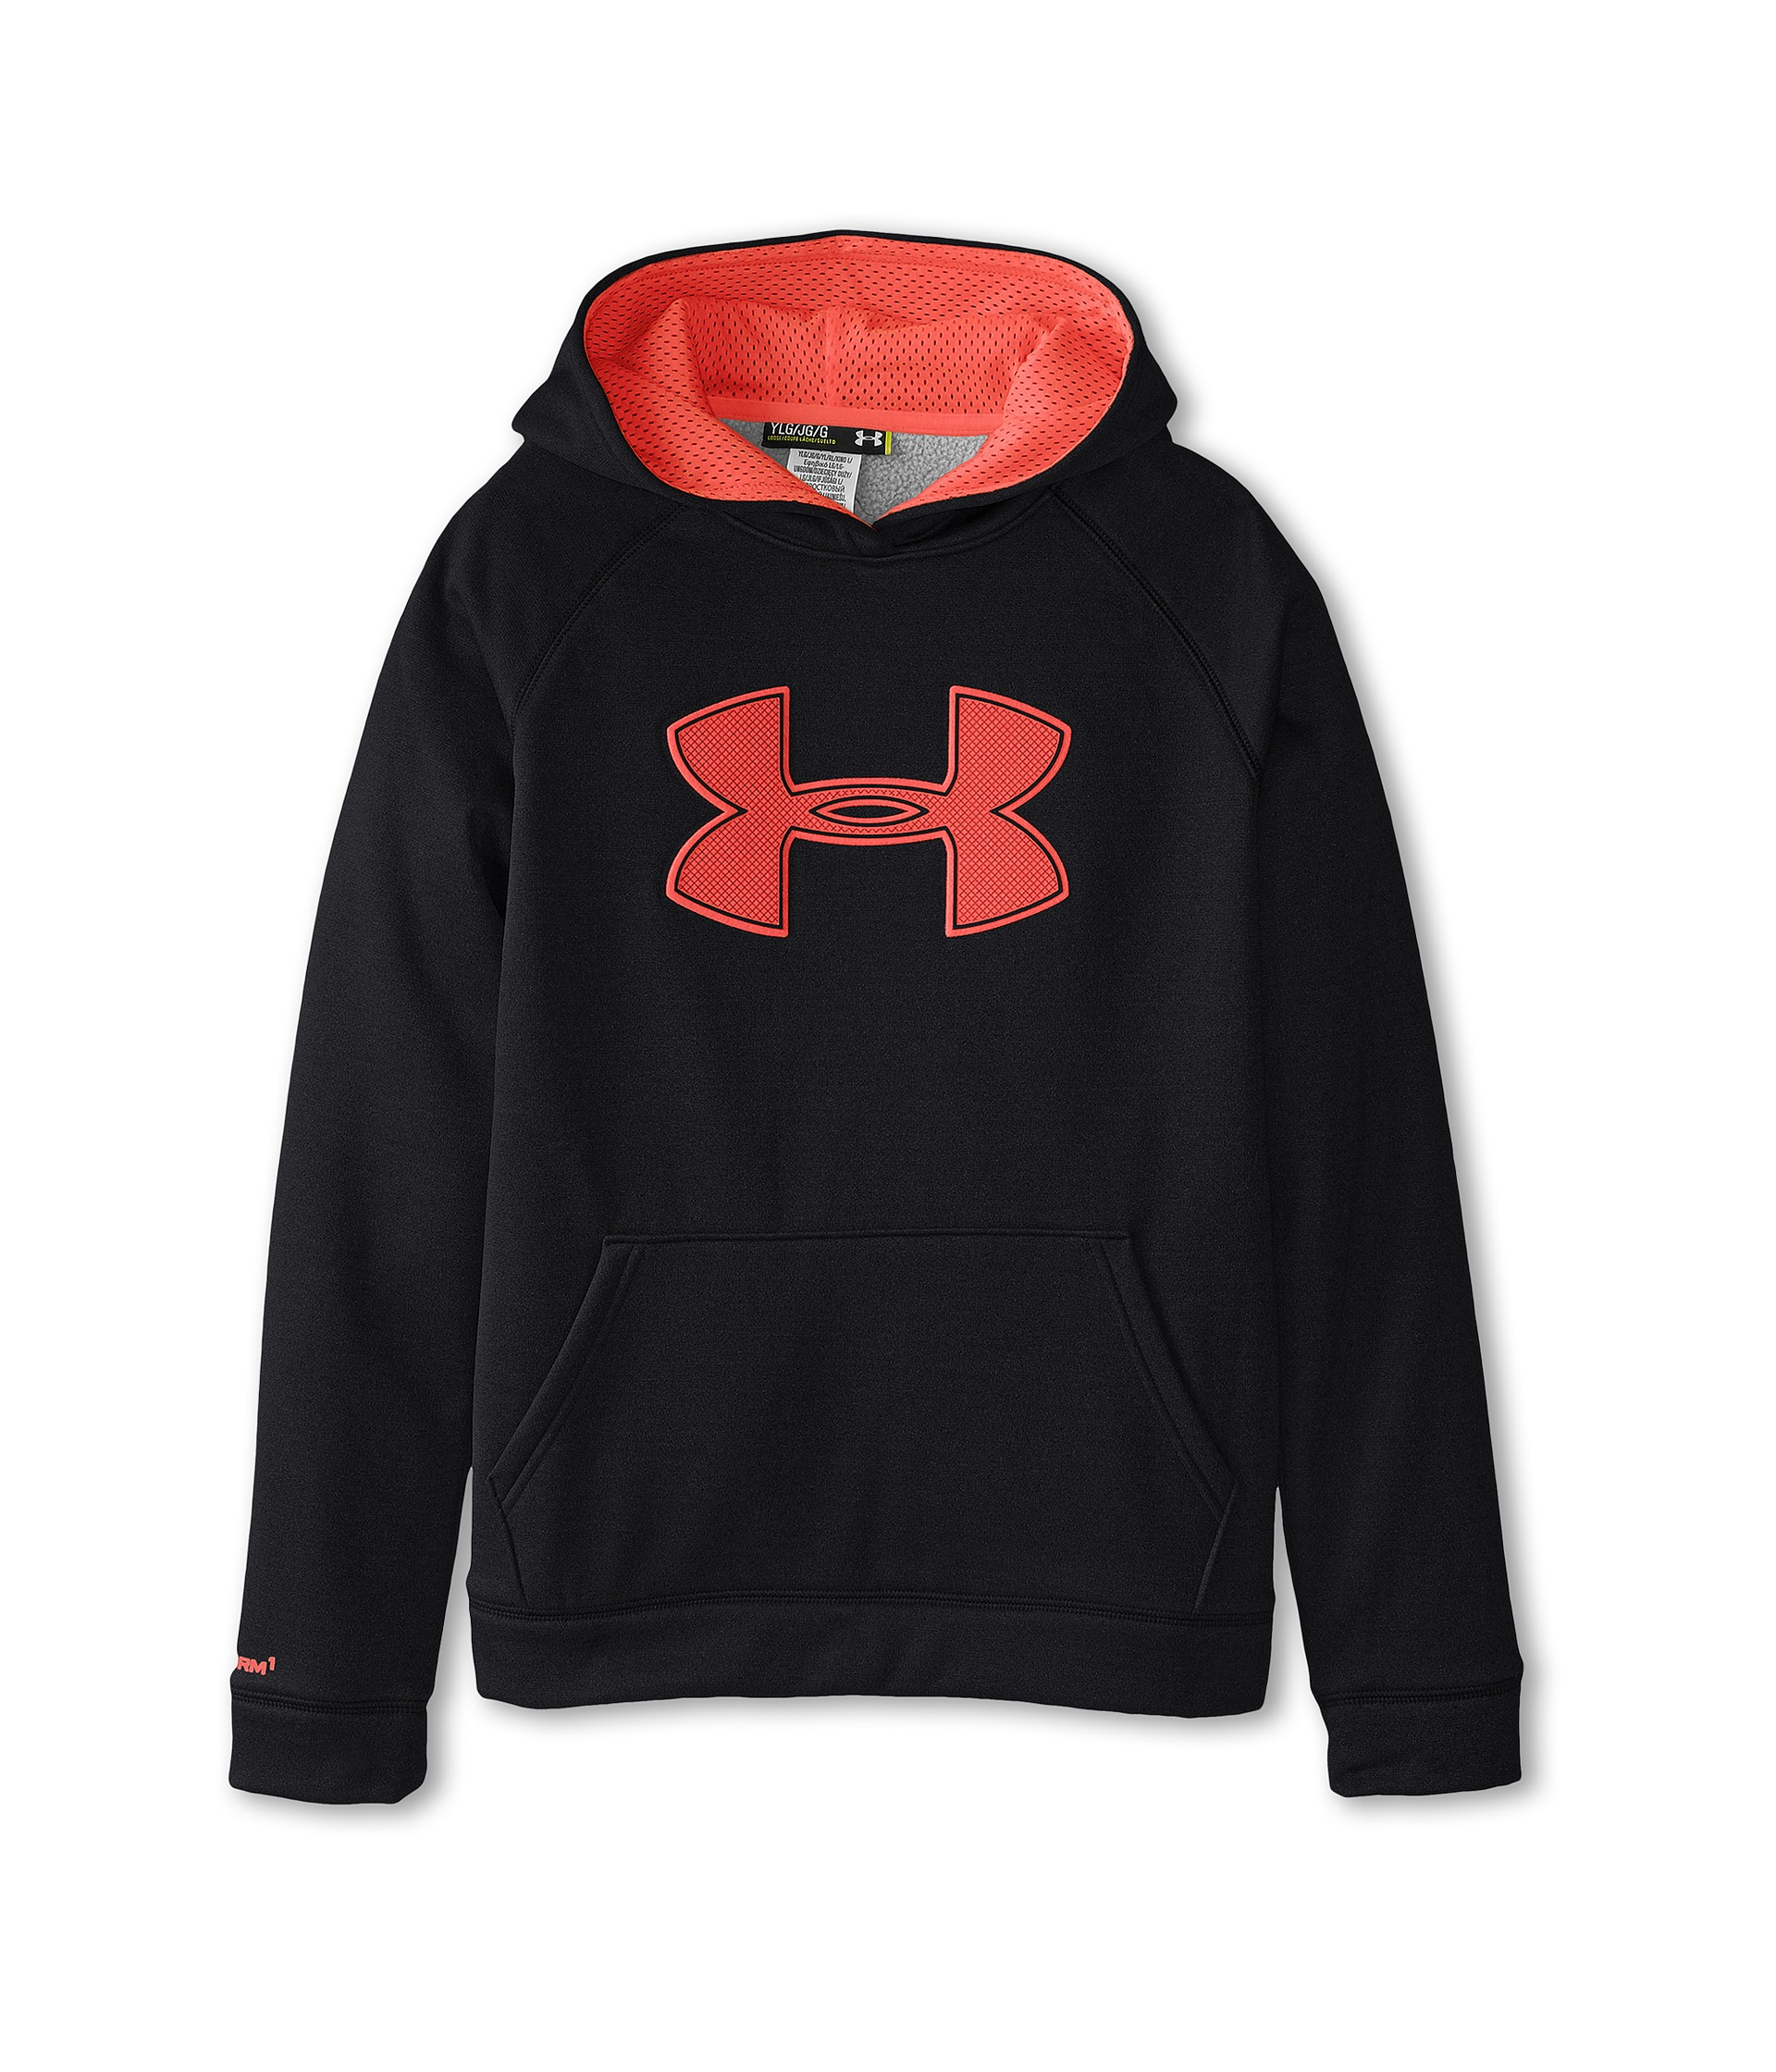 Under armour youth hoodie big logo